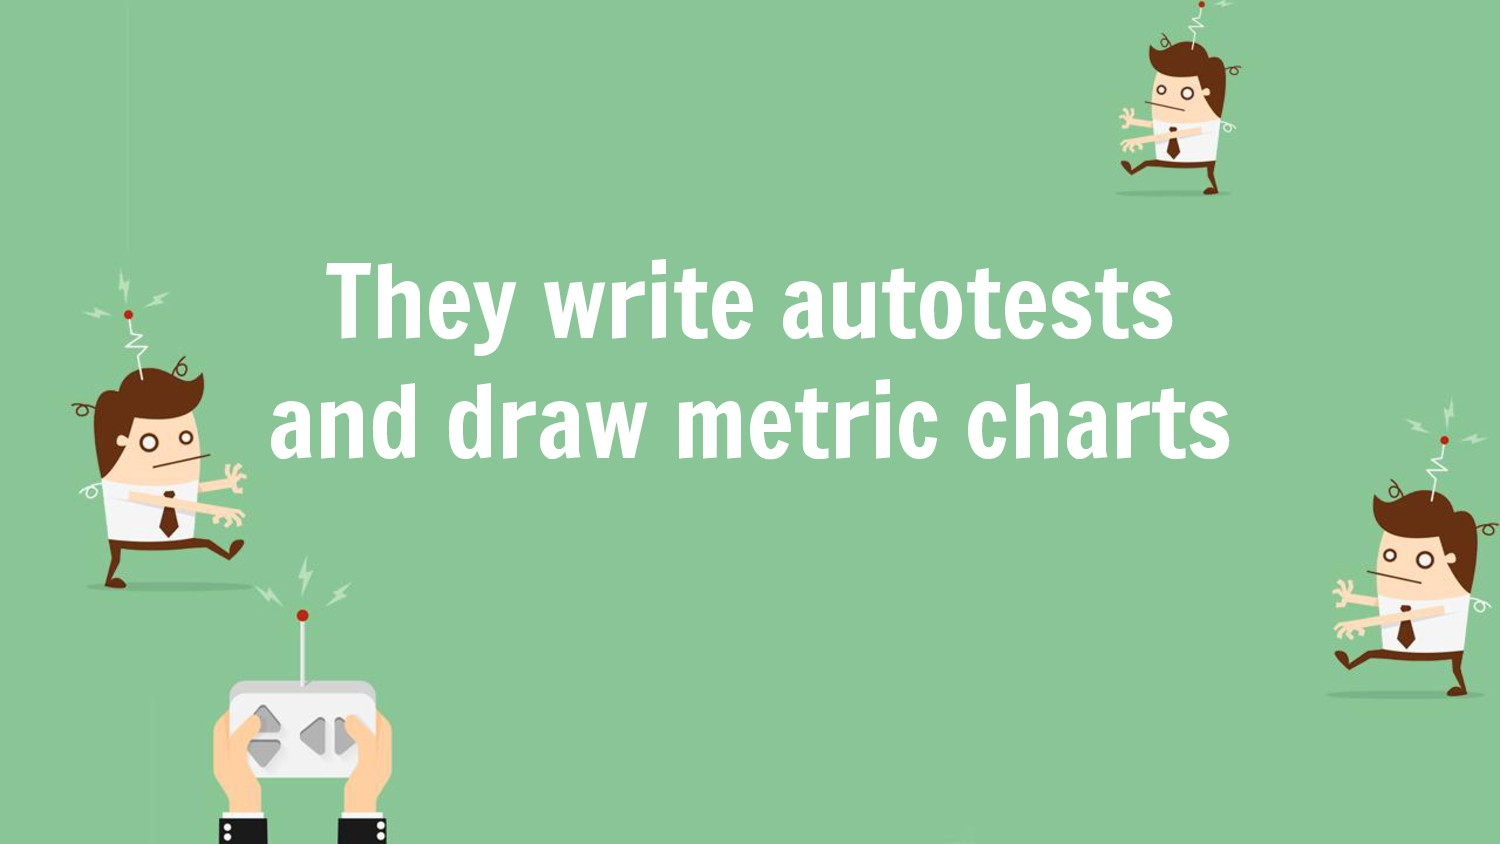 They write autotests and draw metric charts